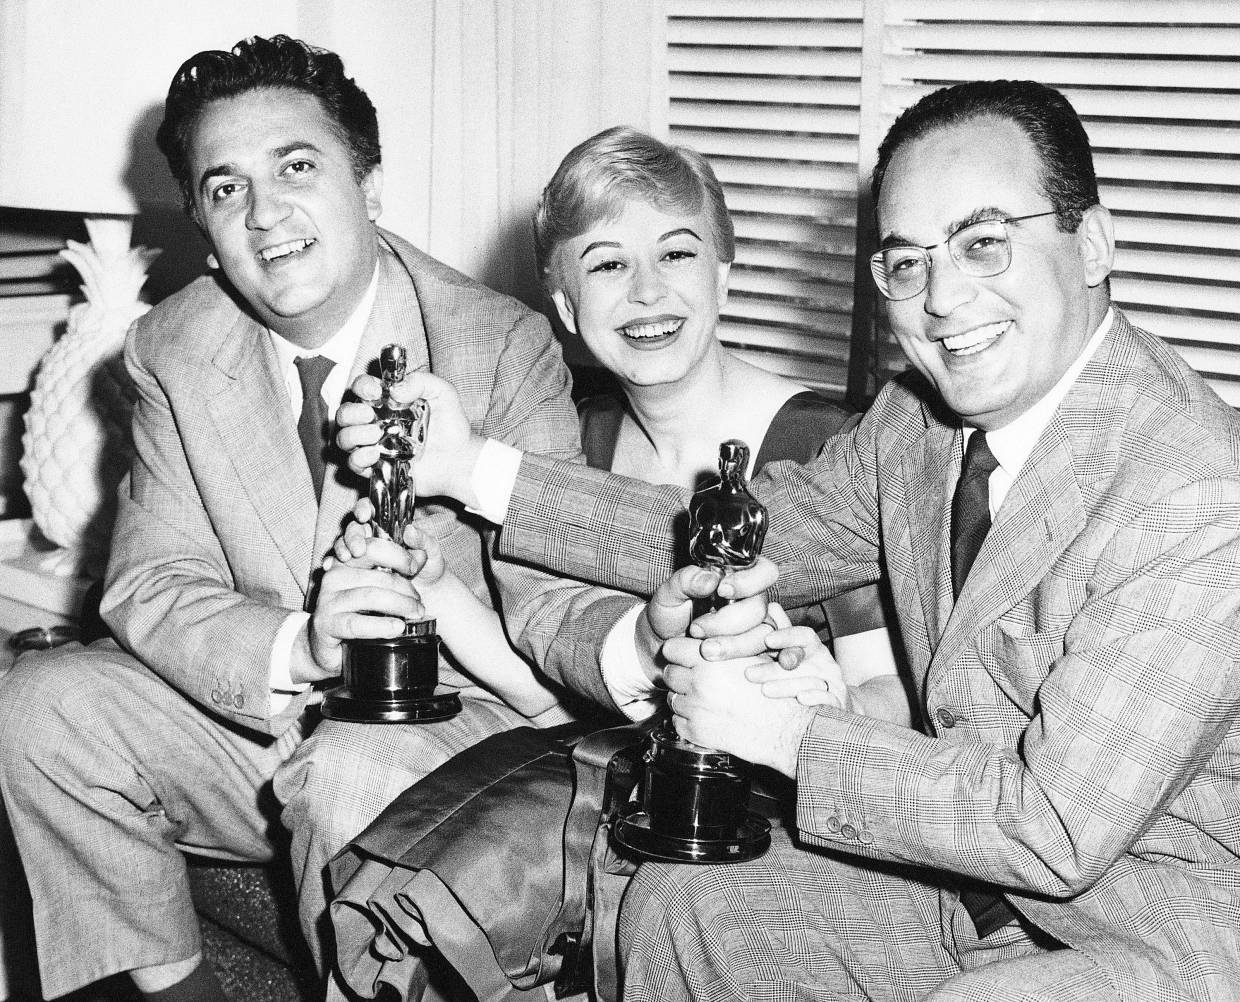 In this March, 1957 photo, Federico Fellini, left, his wife Giulietta Masina, and film producer Dino De Laurentiis hold the Oscars awarded for 'La Strada' in Los Angeles. Photo: Filepic